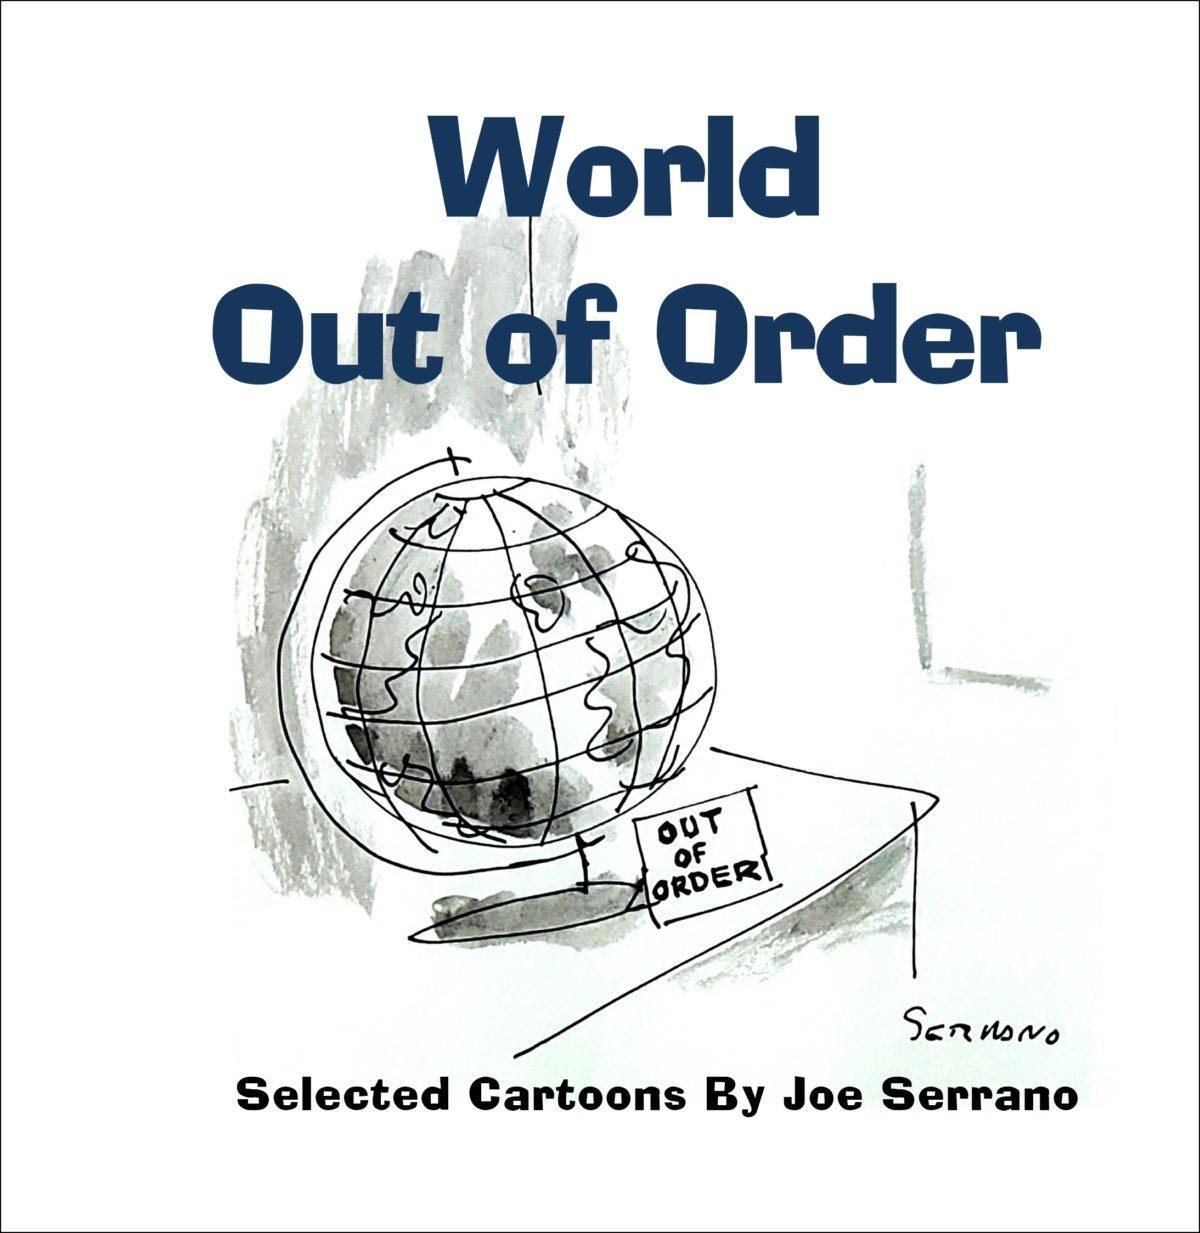 World Out of Order